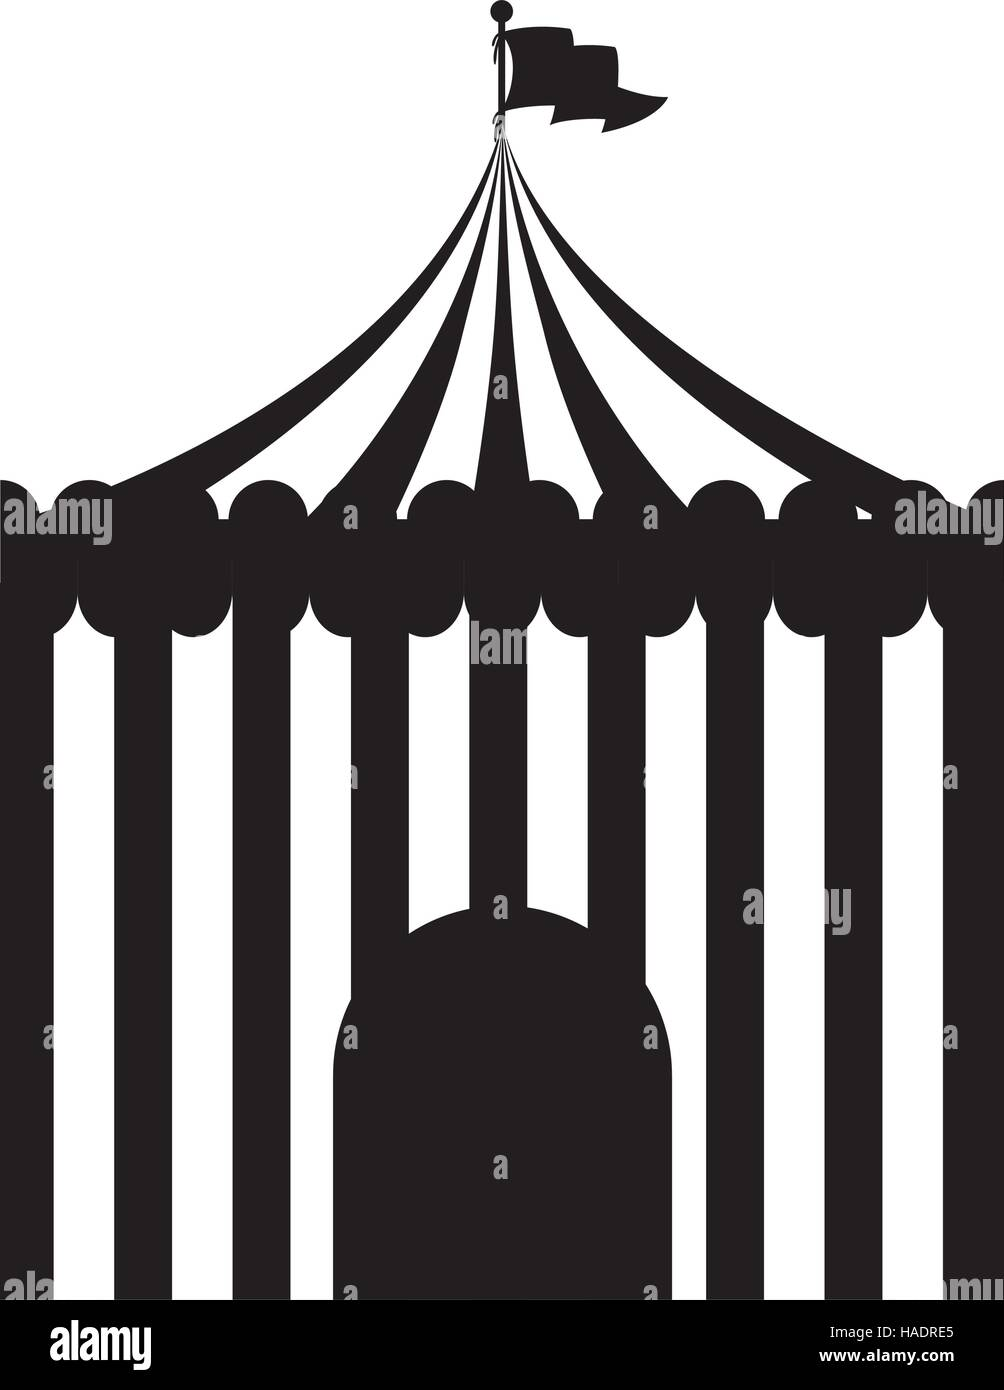 black silhouette circus tent icon vector illustration  sc 1 st  Alamy & black silhouette circus tent icon vector illustration Stock Vector ...